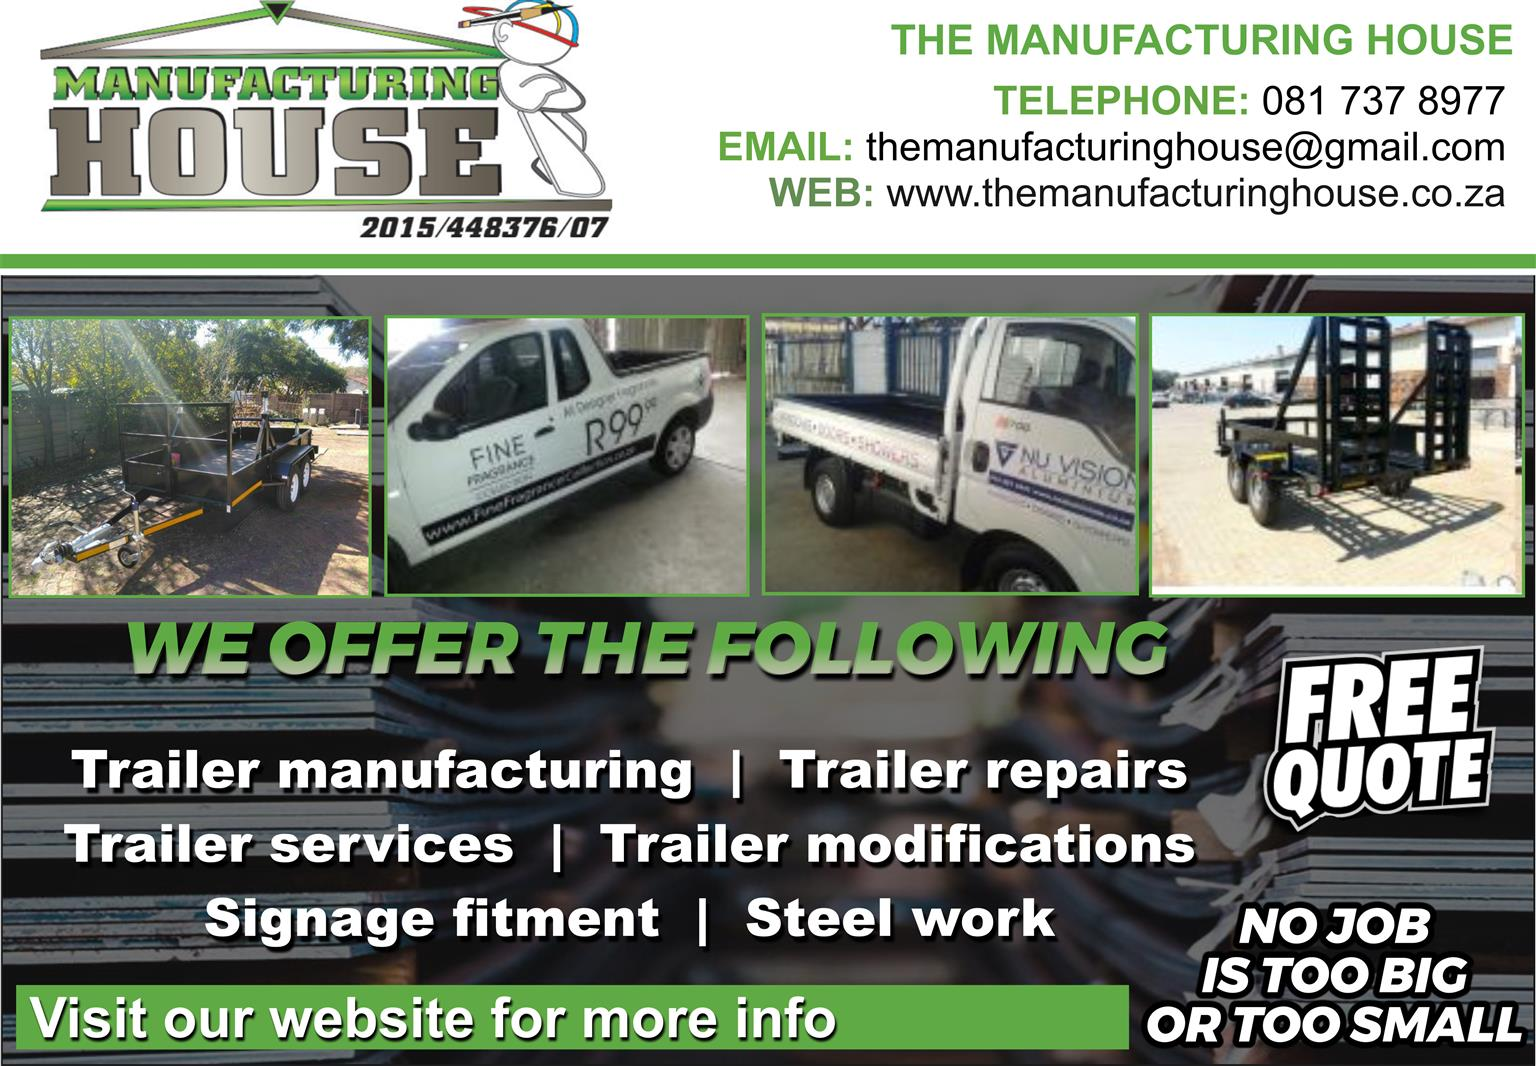 Trailer services and repairs